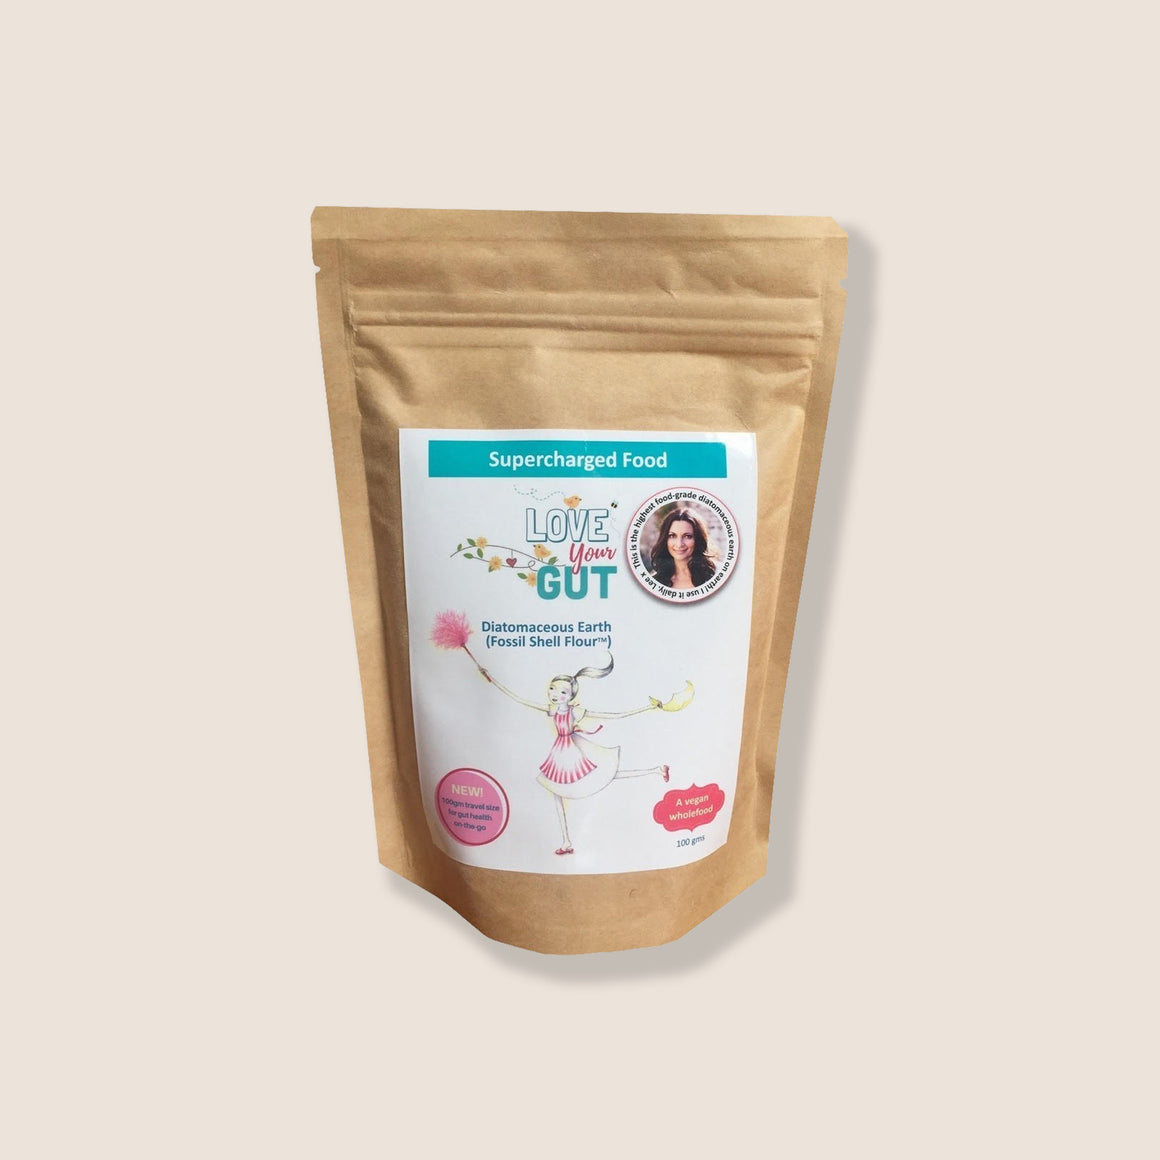 SUPERCHARGED FOOD LOVE YOUR GUT POWDER 100G BAG